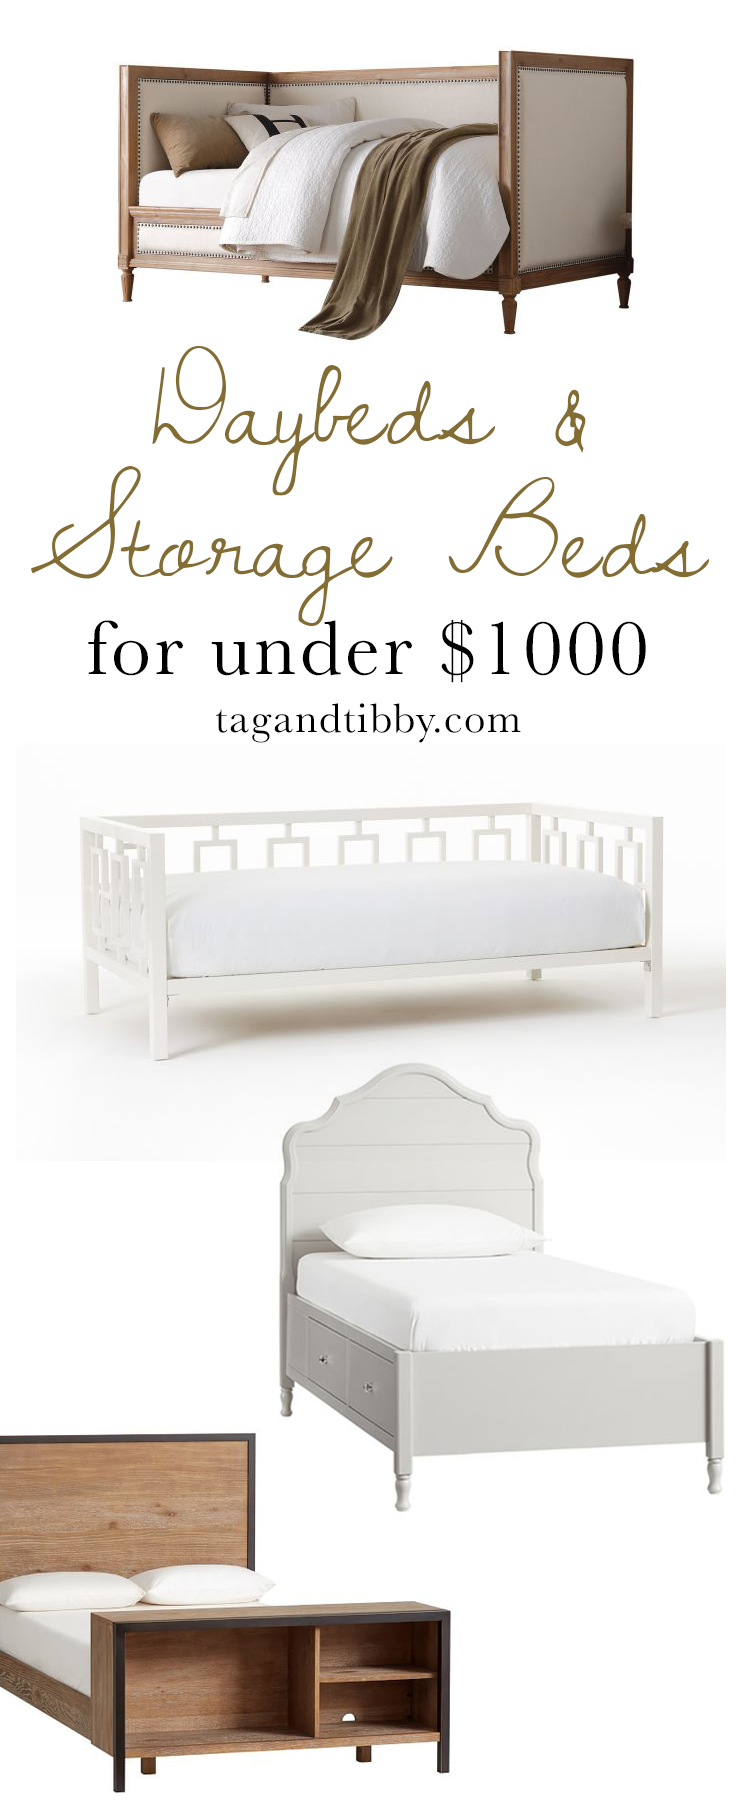 Daybeds & Storage Beds for Tweens priced under $1k